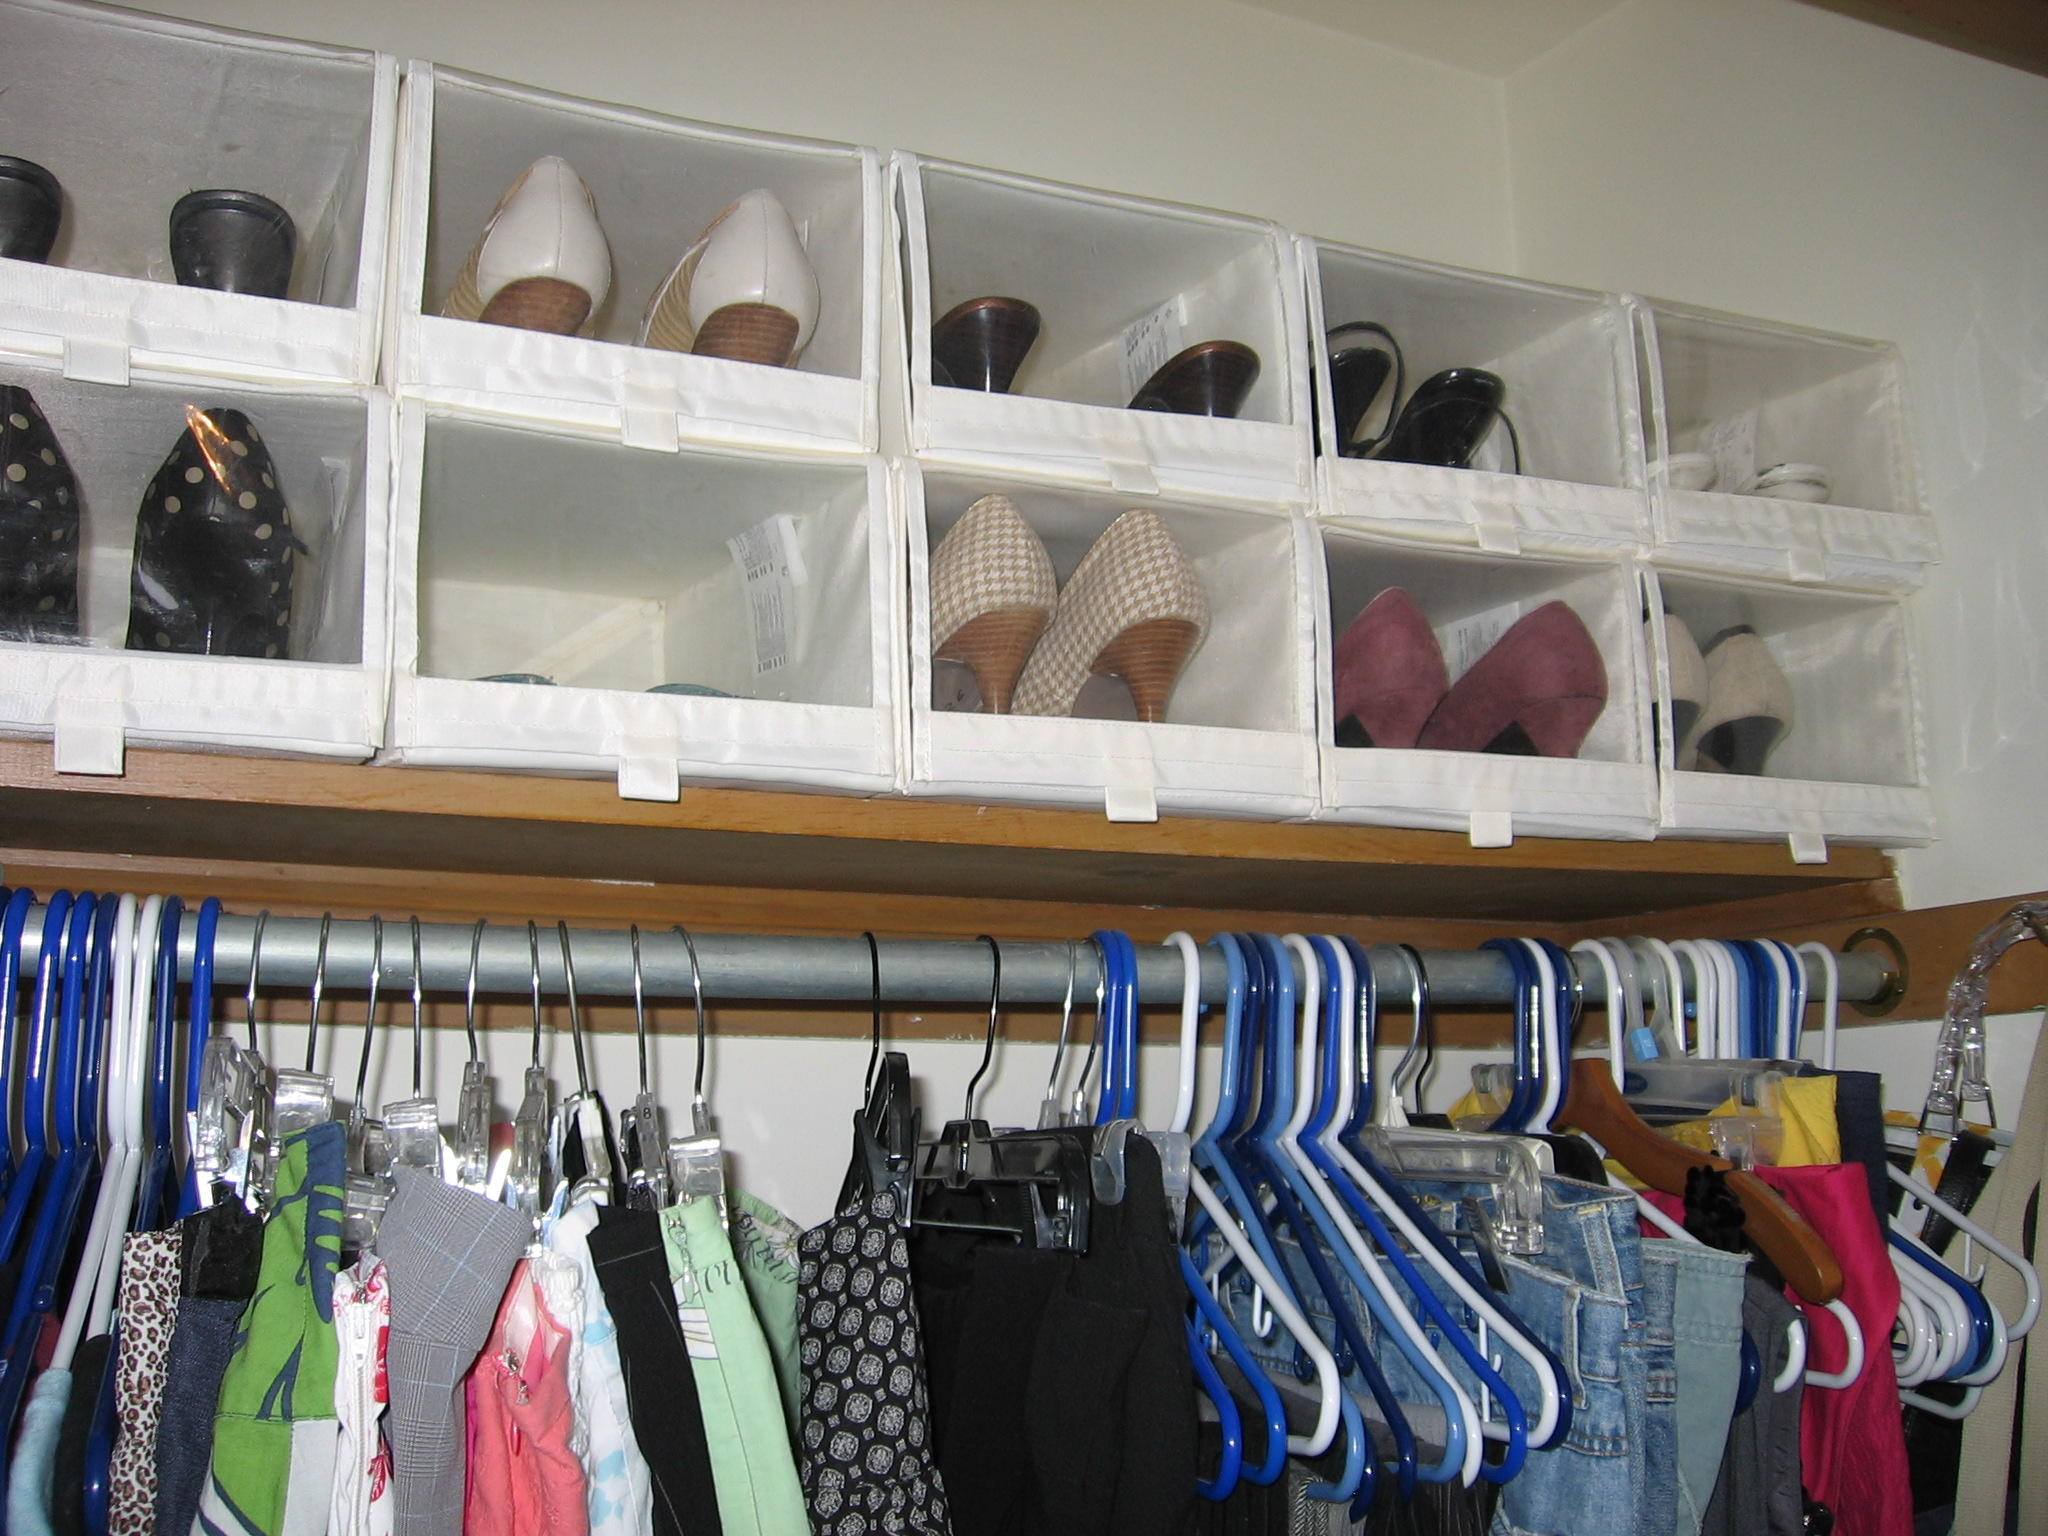 The With Help Me Organize My Closet